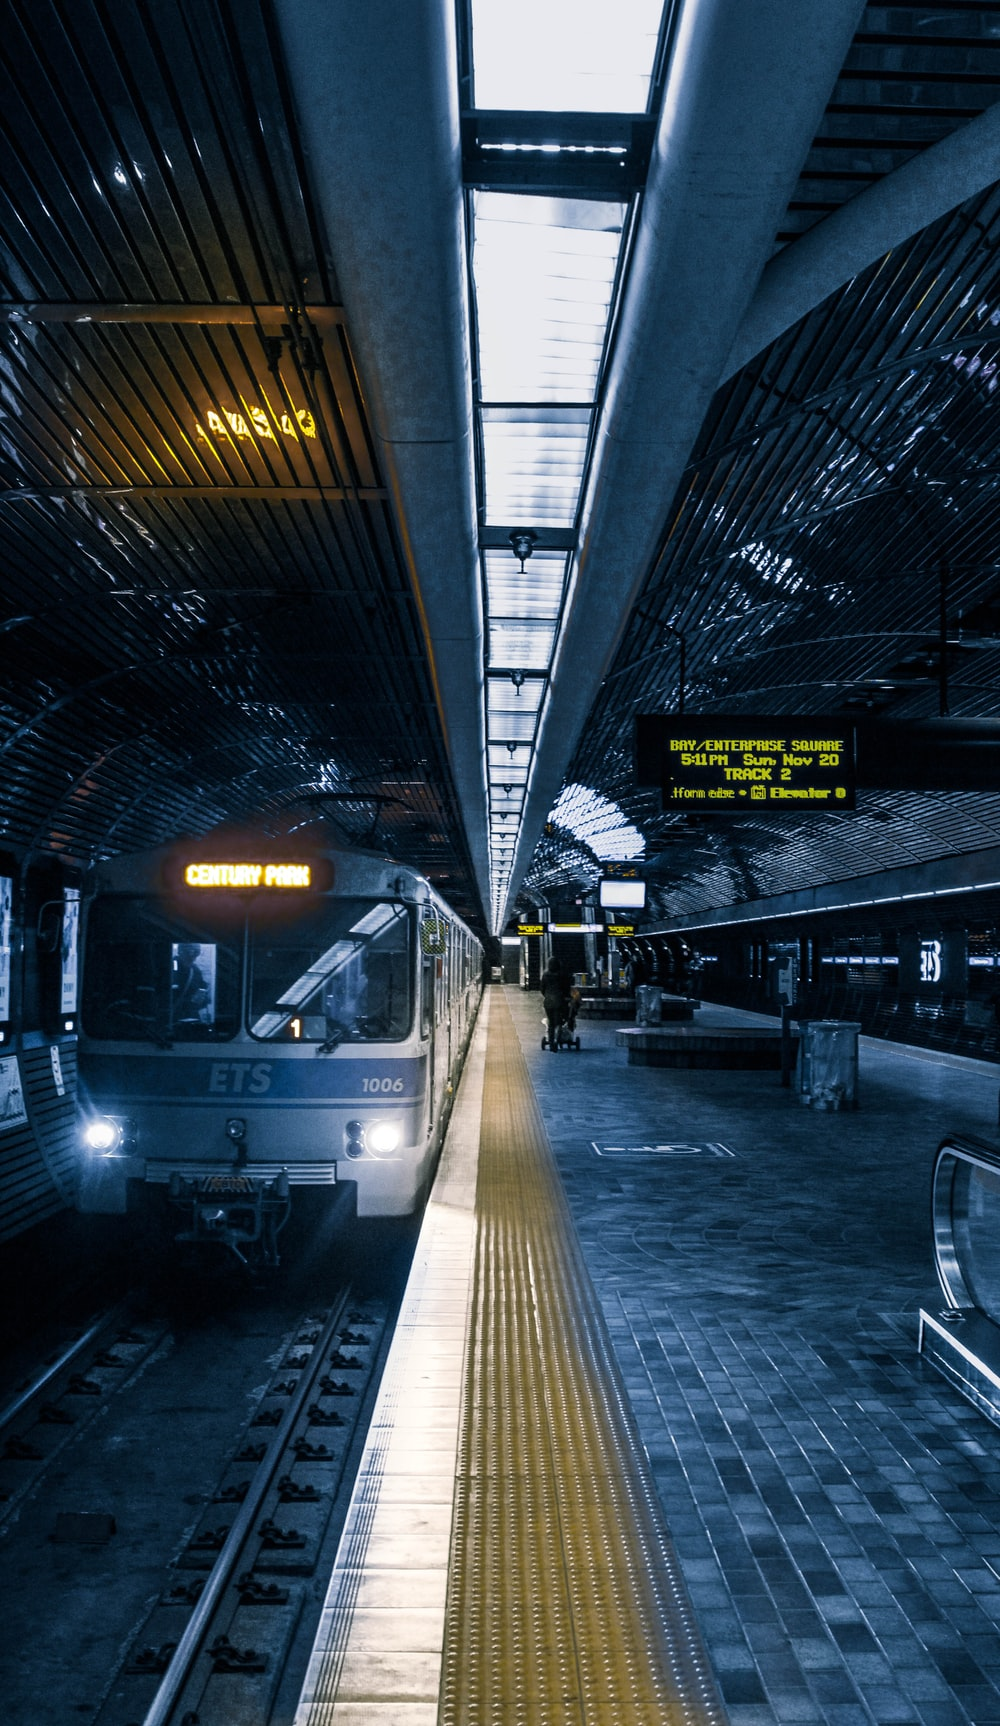 ETS train in station